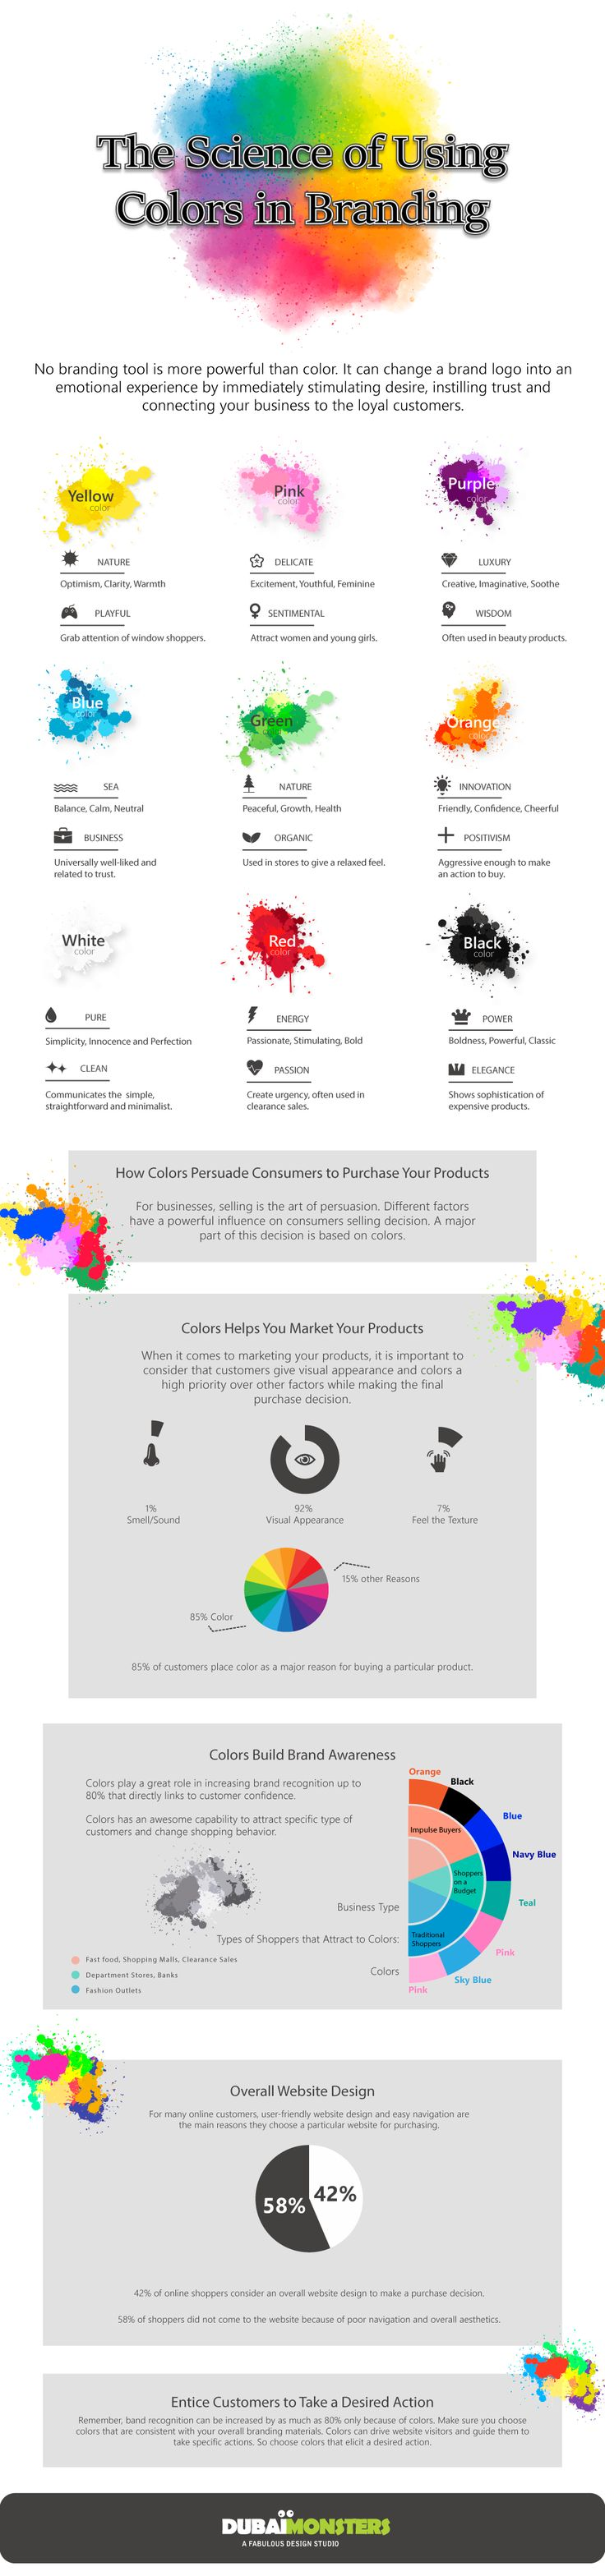 The Science of Using Colors in Branding #Infographic